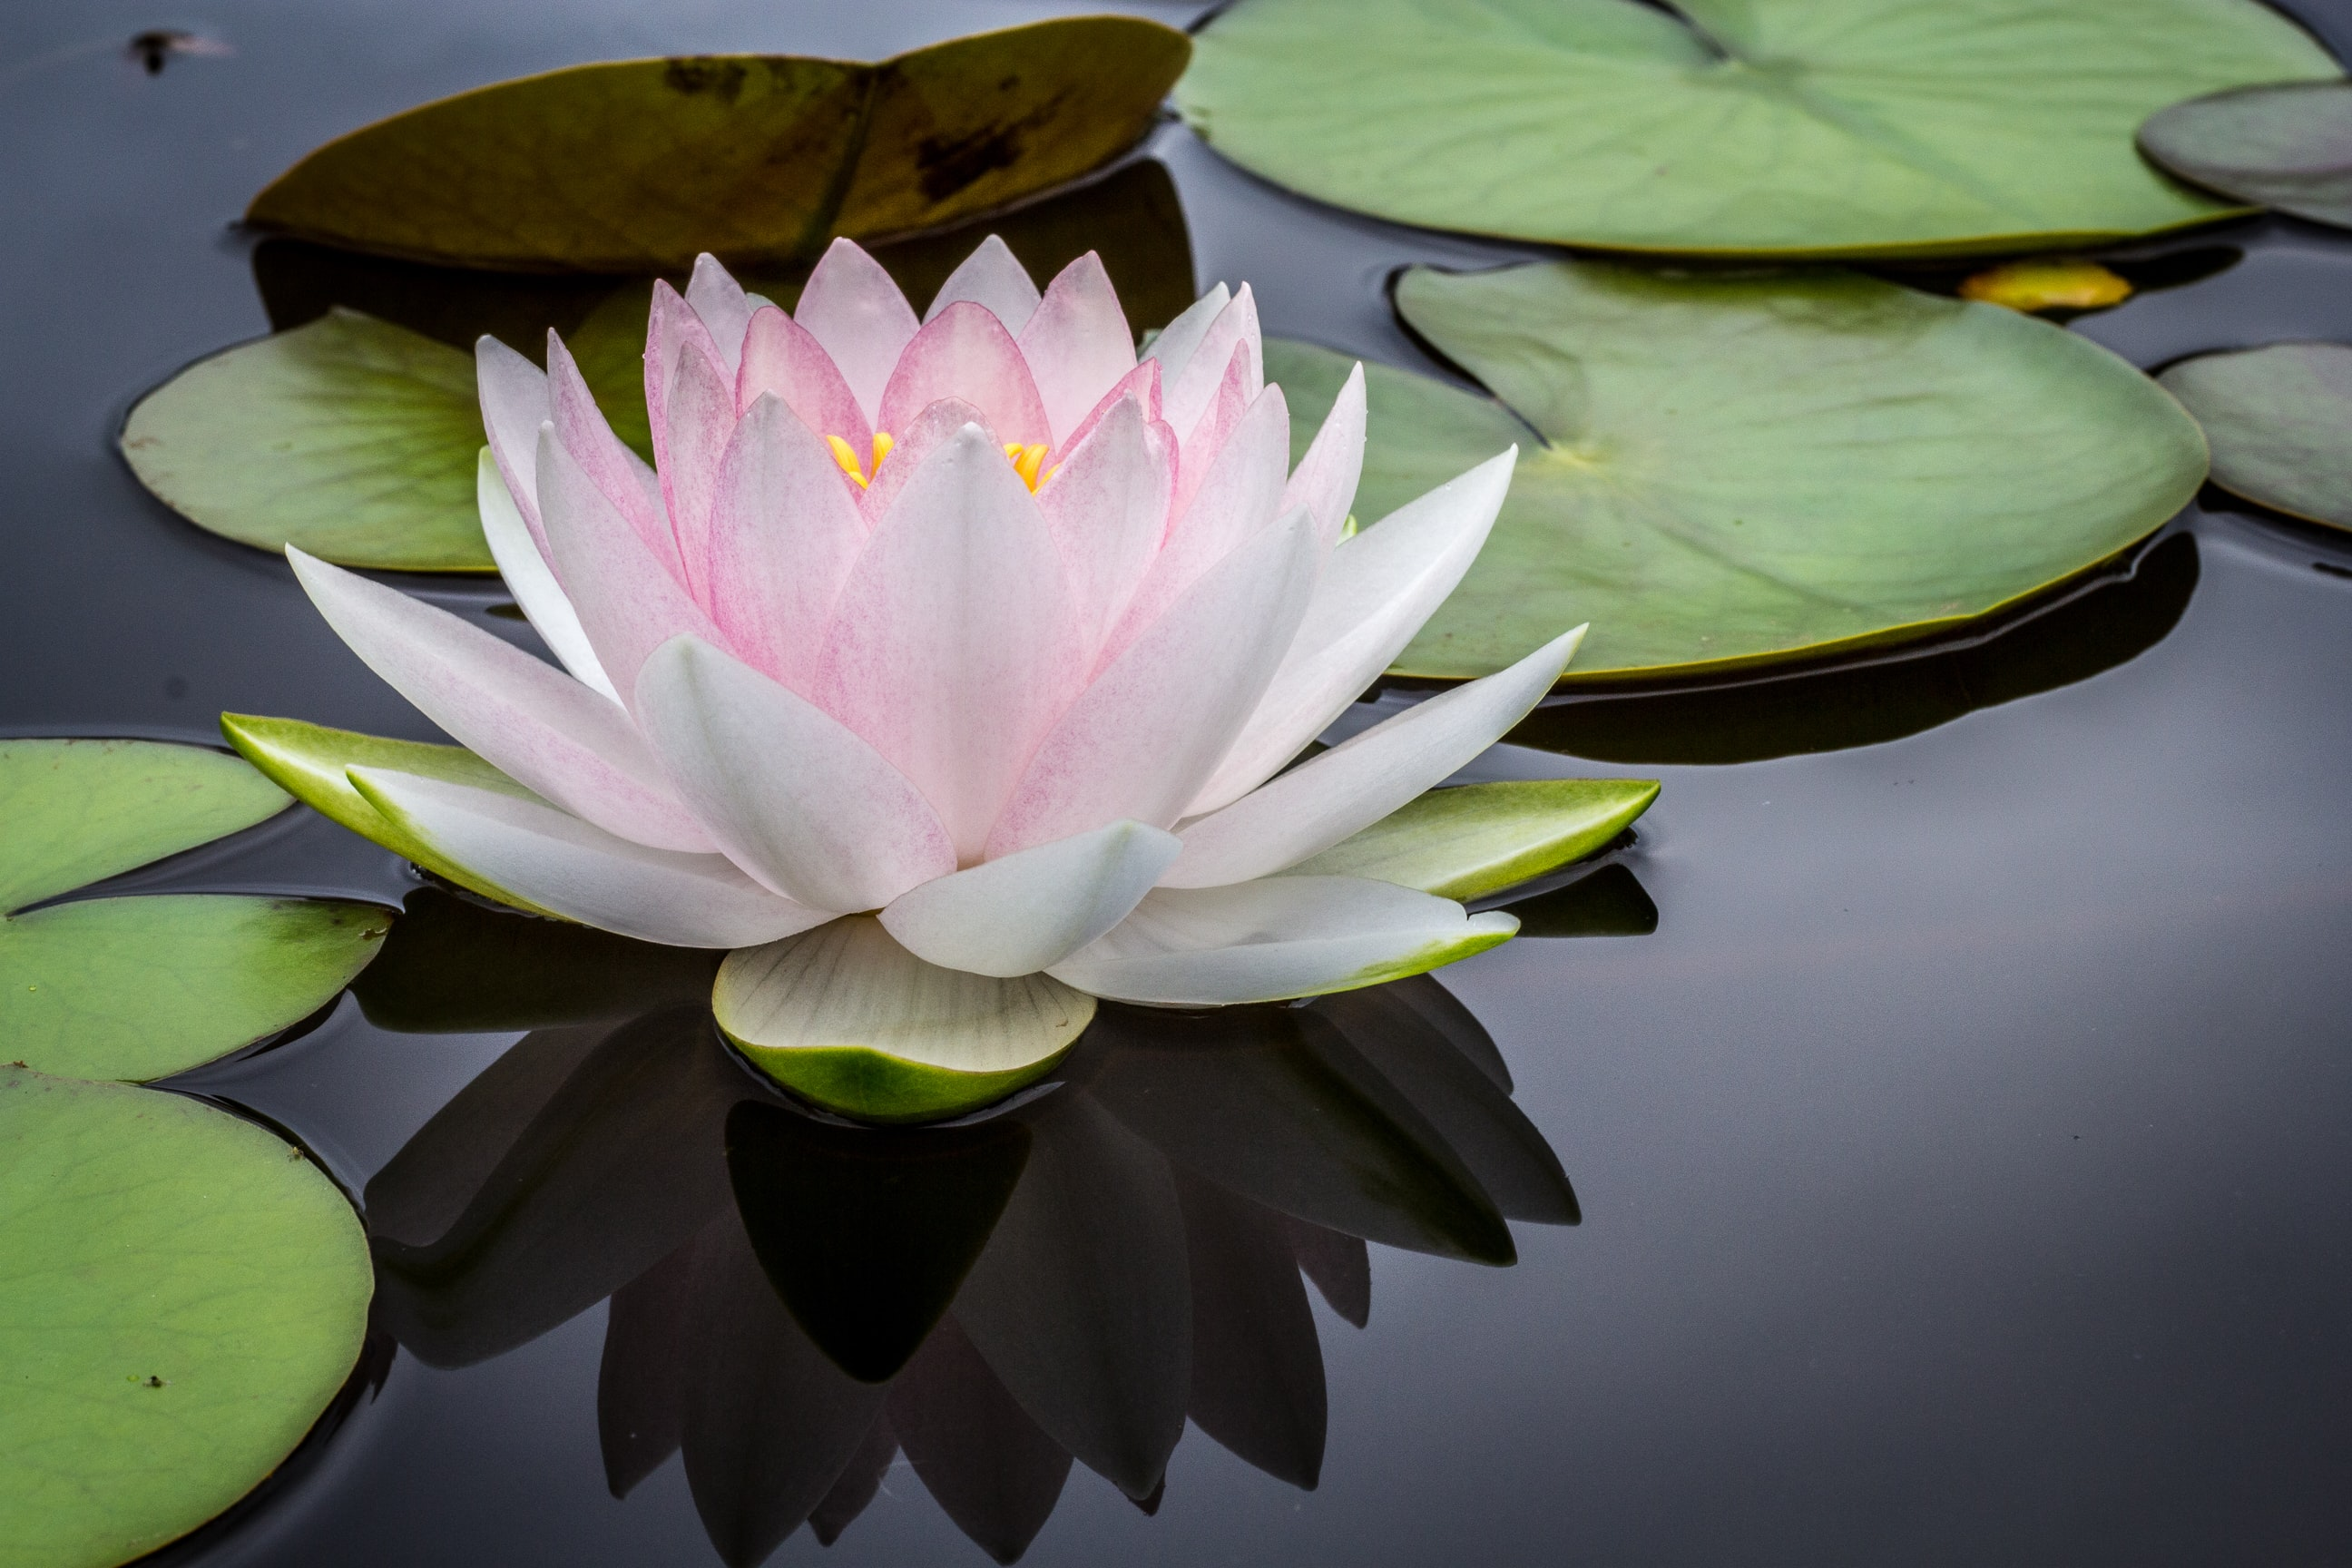 Lotus flower pictures photos images